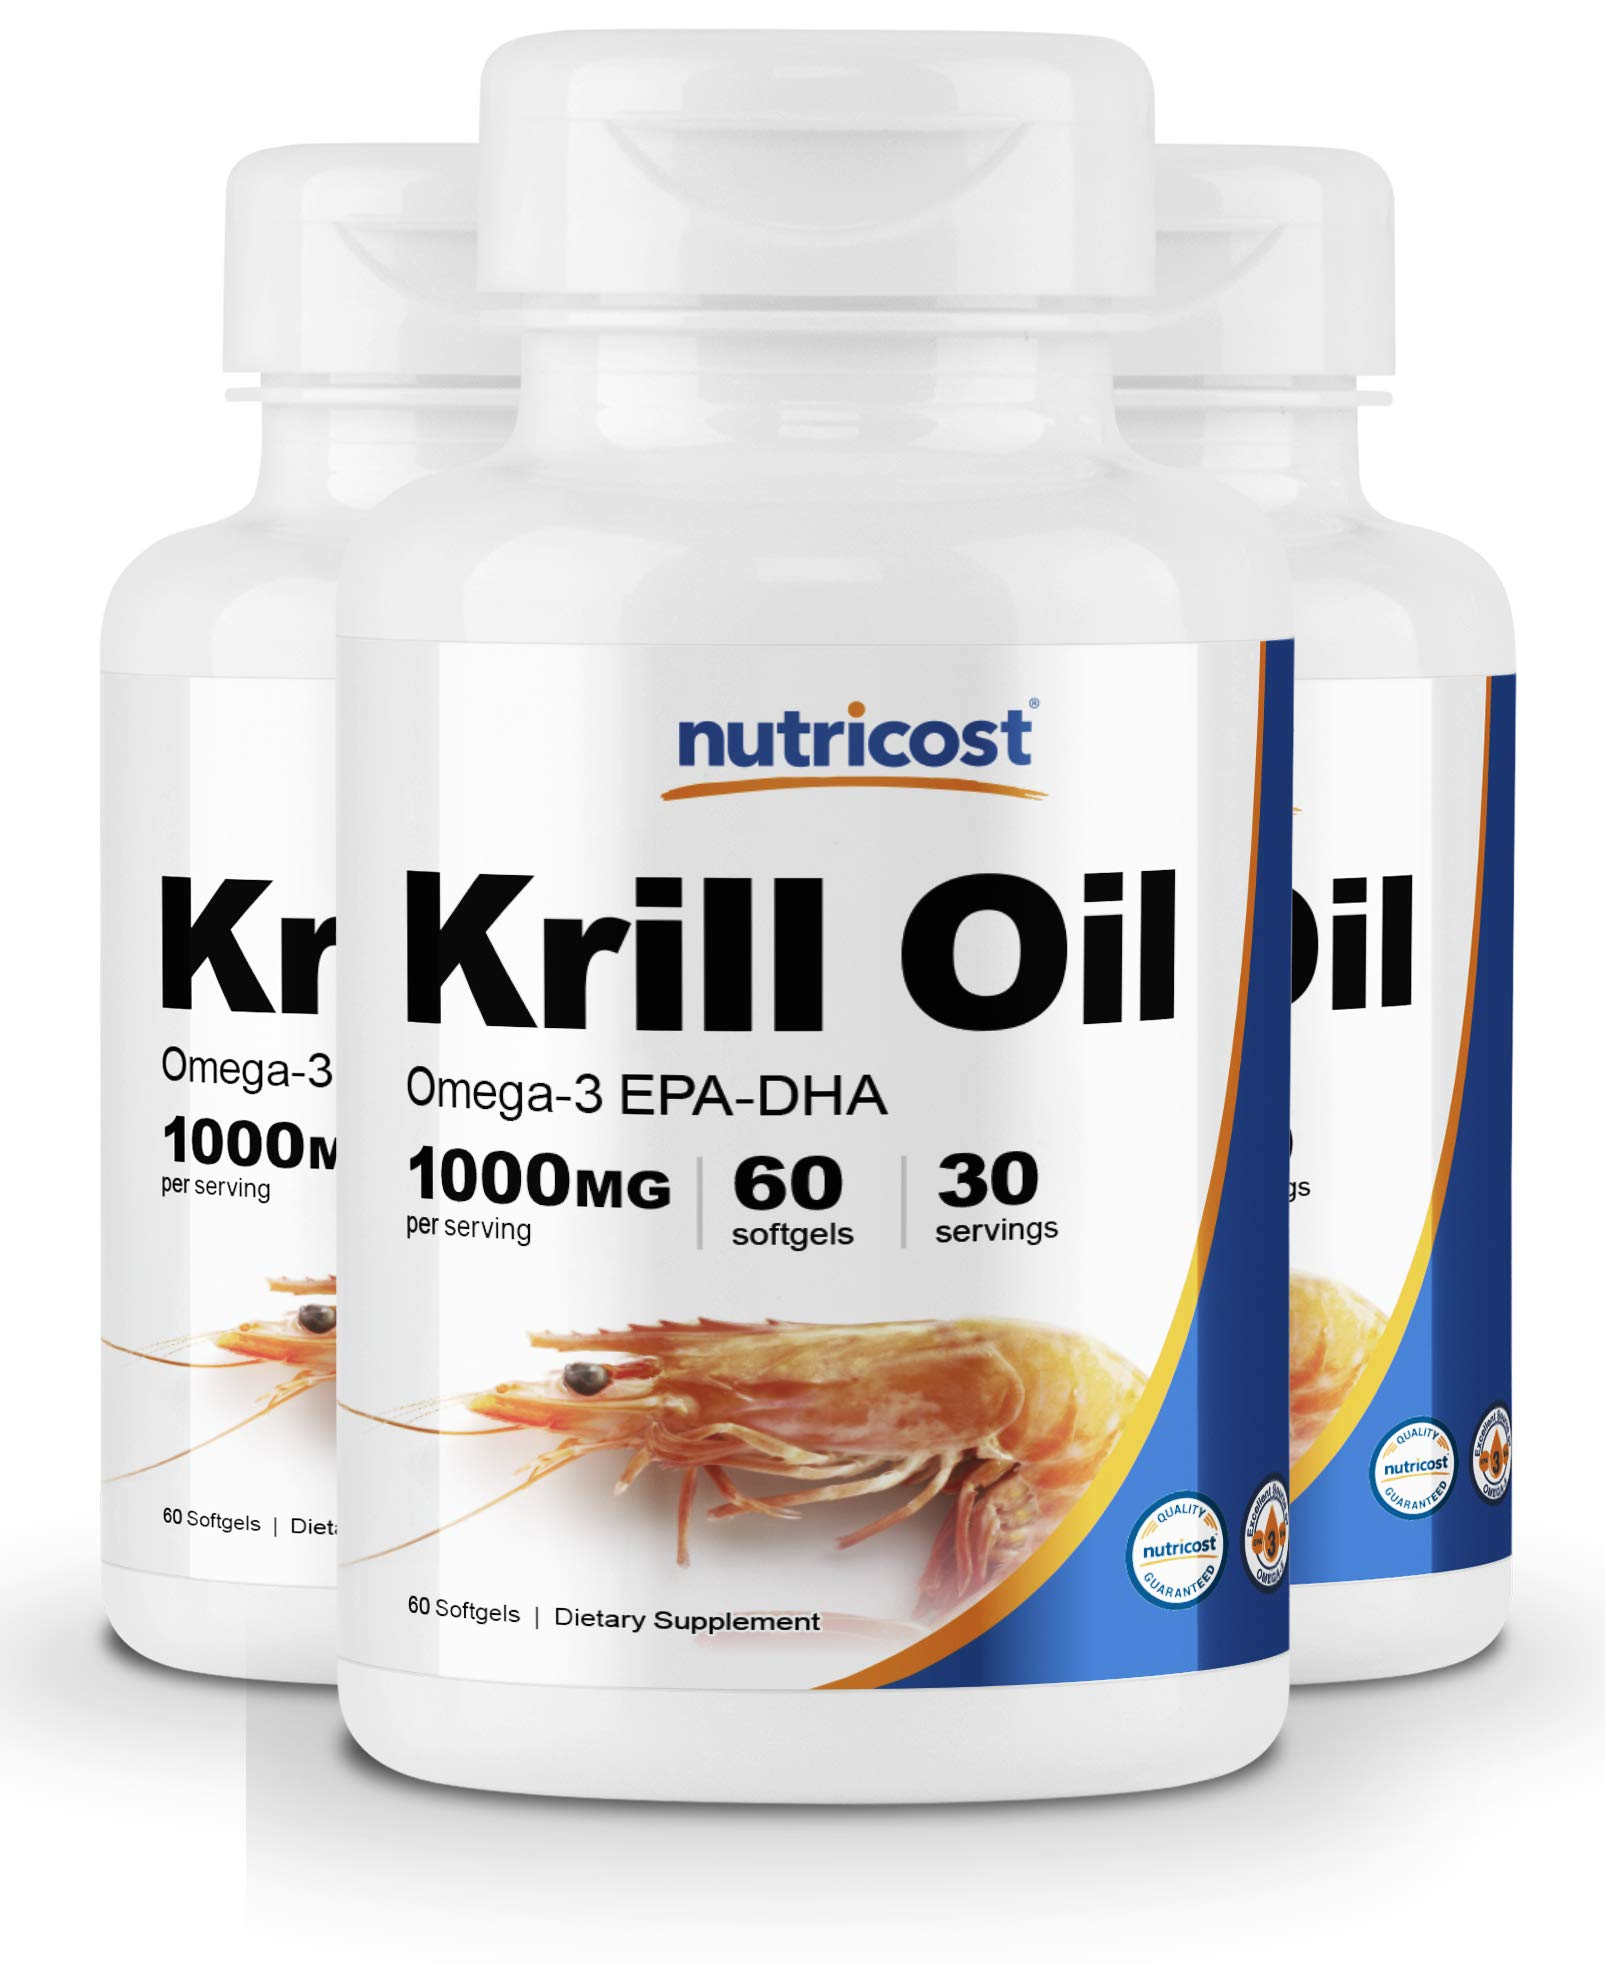 Nutricost Krill Oil 1000mg; 60 Liquid Softgels (3 Bottles) - Omega-3 EPA-DHA by Nutricost